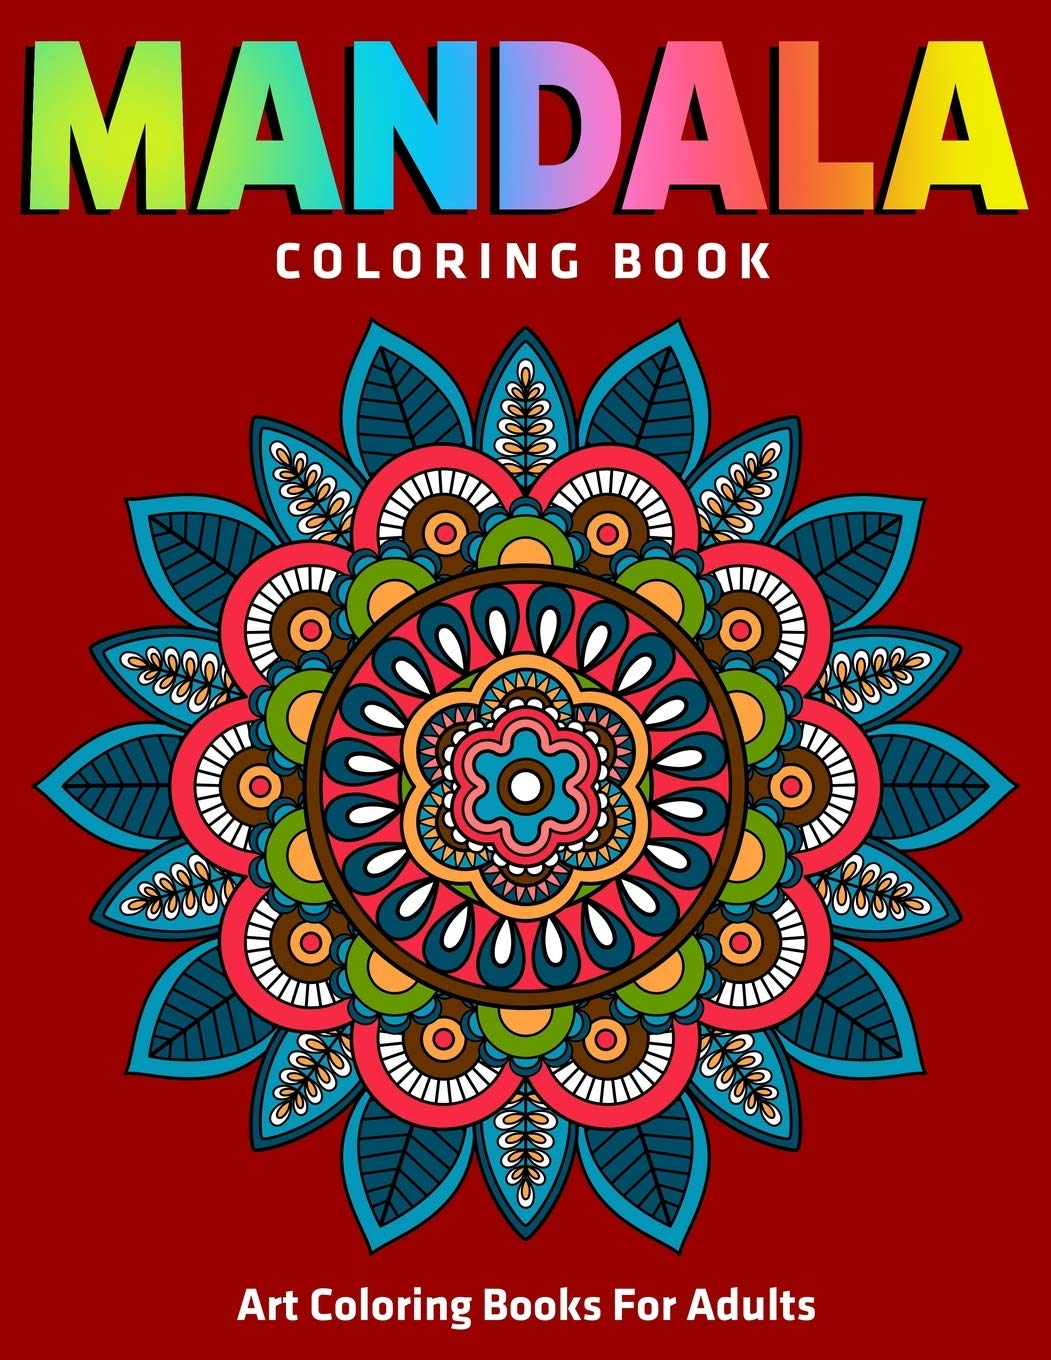 Image OfMandala Coloring Book : Art Coloring Books For Adults: 50 Unique Stress Relieving Mandala Designs For Adult Relaxation, Me...